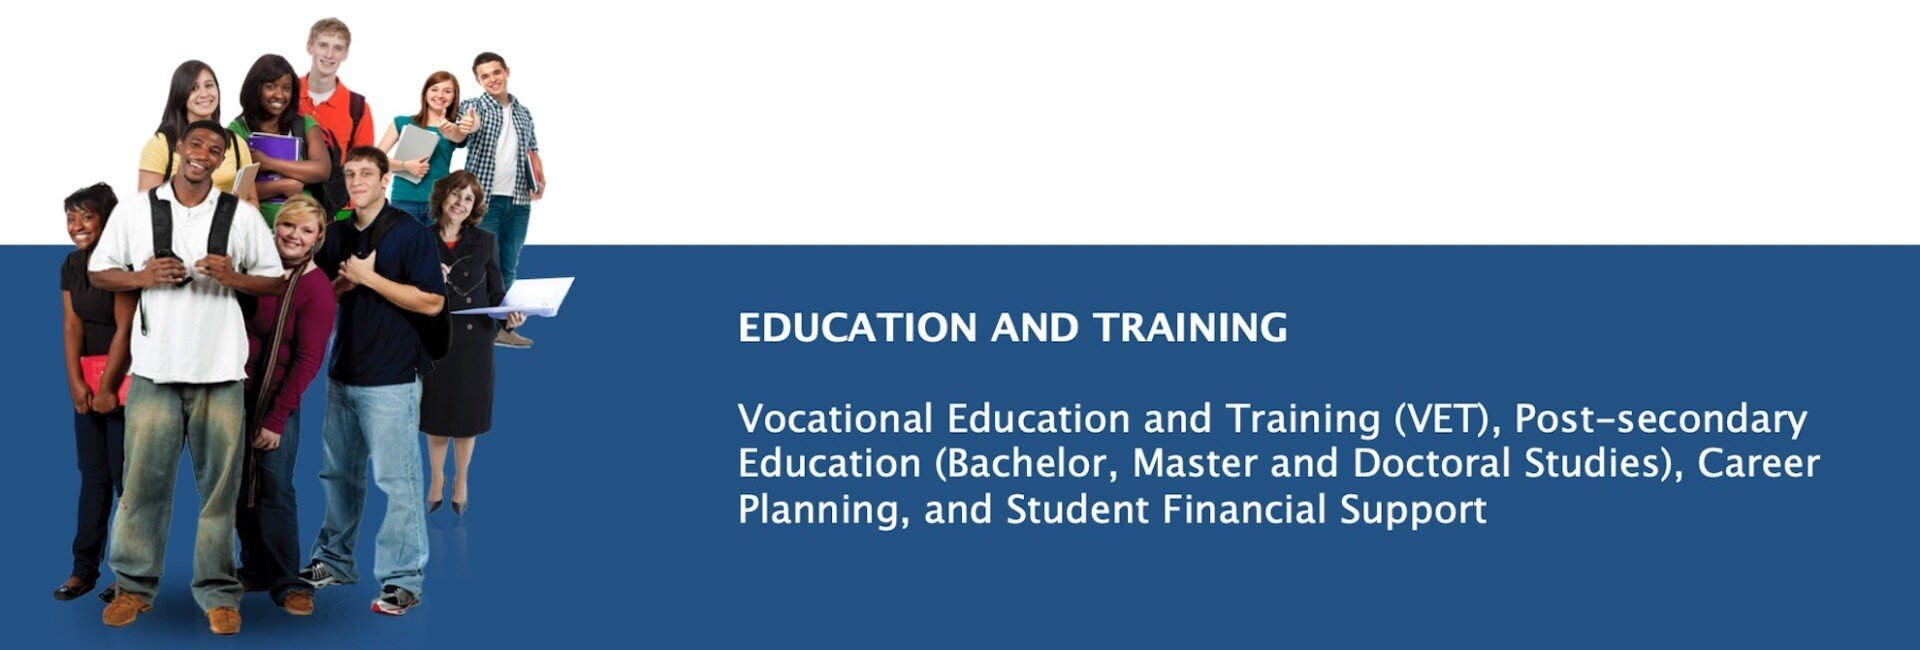 Education and Training for all